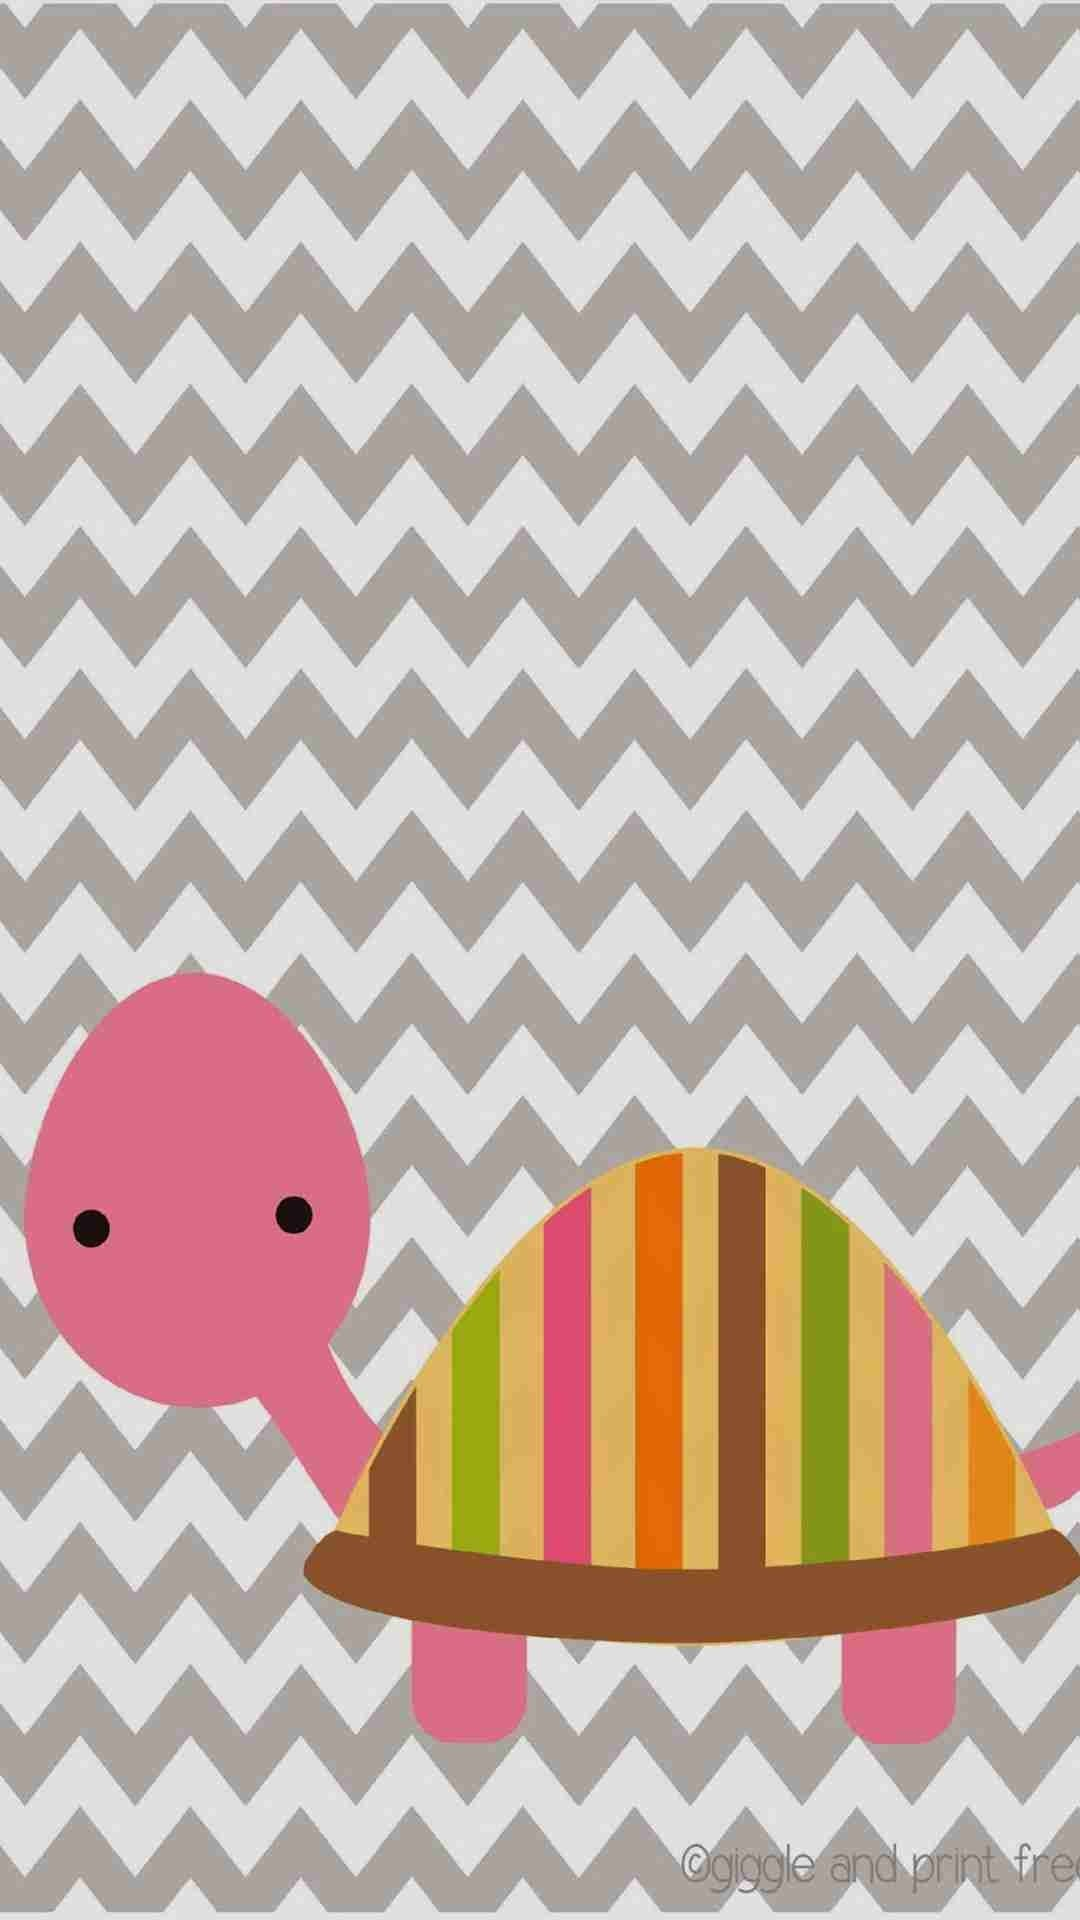 1080x1920 DIY Cute Pink Tortoise Pattern Chevron iPhone 6 Plus Wallpaper - Zigzag  Pattern #iPhone #